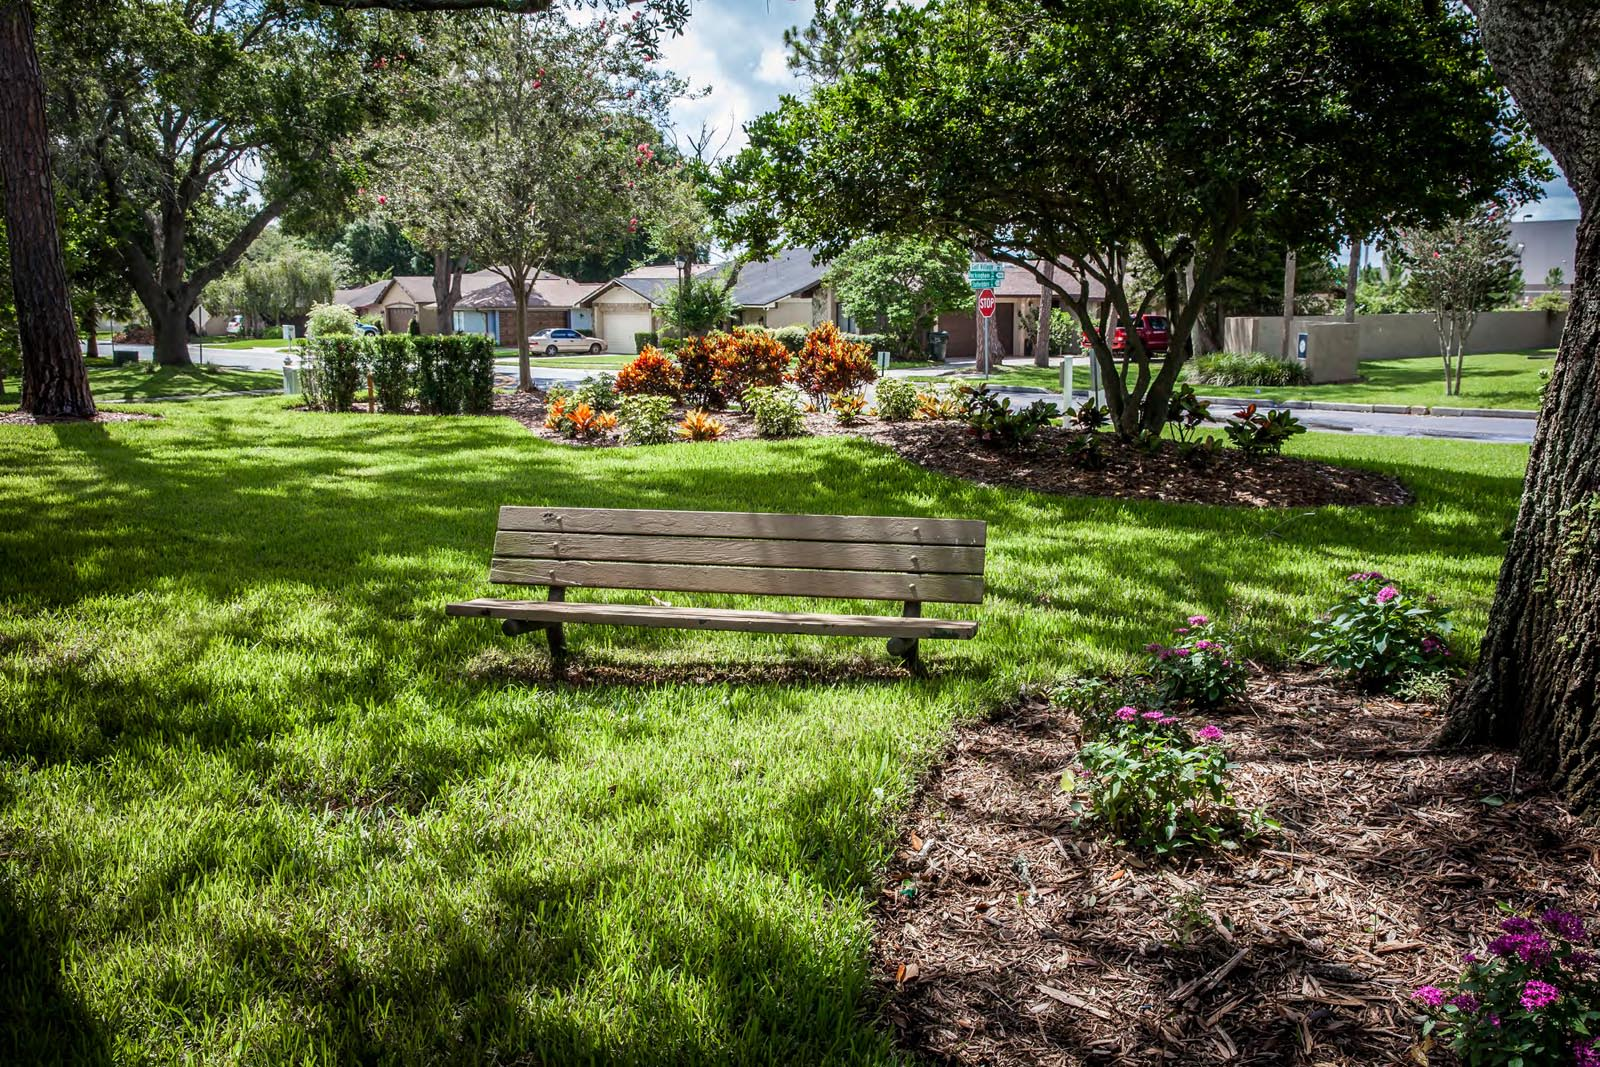 20 Best Apartments In Lakeland Fl With Pictures. Lawn And Garden Equipment  Supplies At Ace Hardware. Craigslist ...